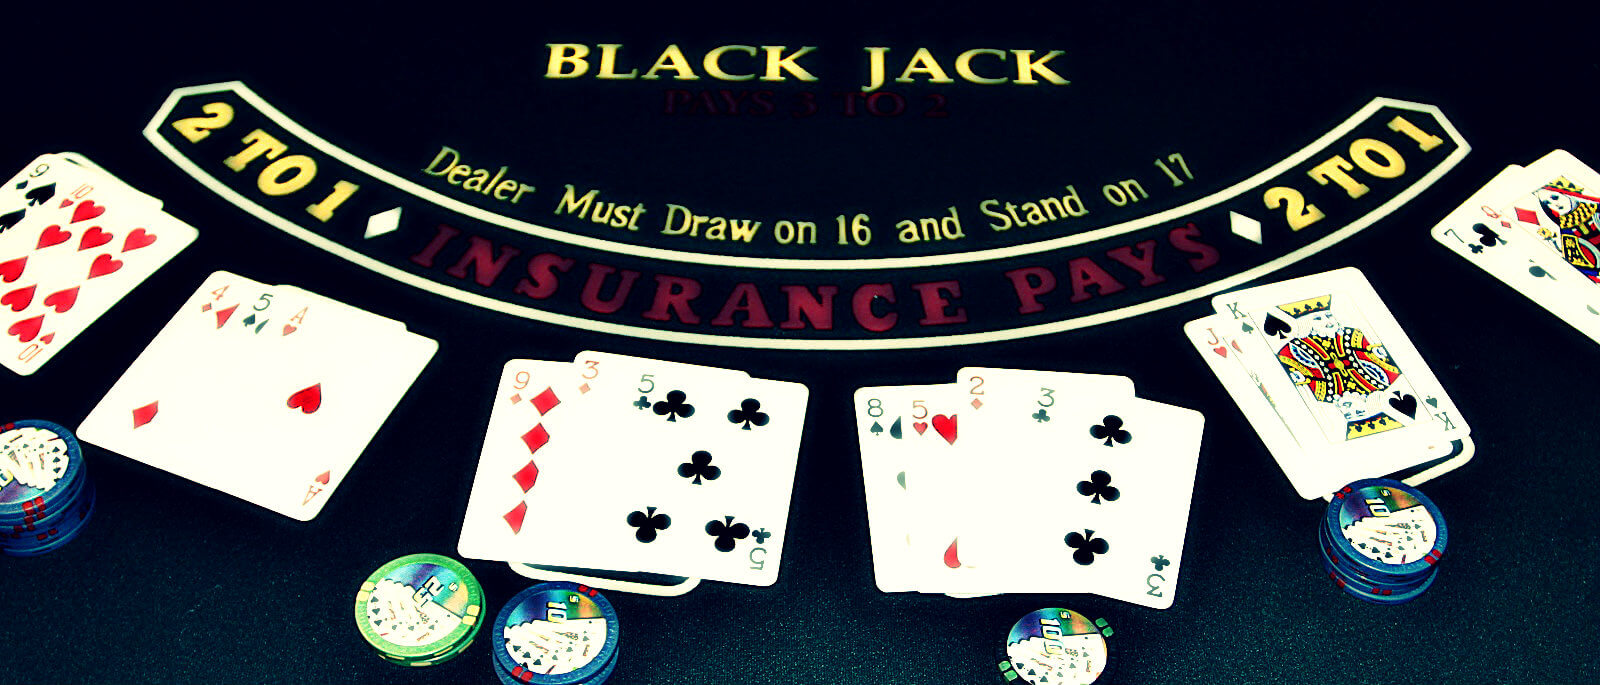 Five years ago the government of Florida had a formal agreement with Indian tribe Seminole to exclusively provide card games like baccarat, blackjack and others